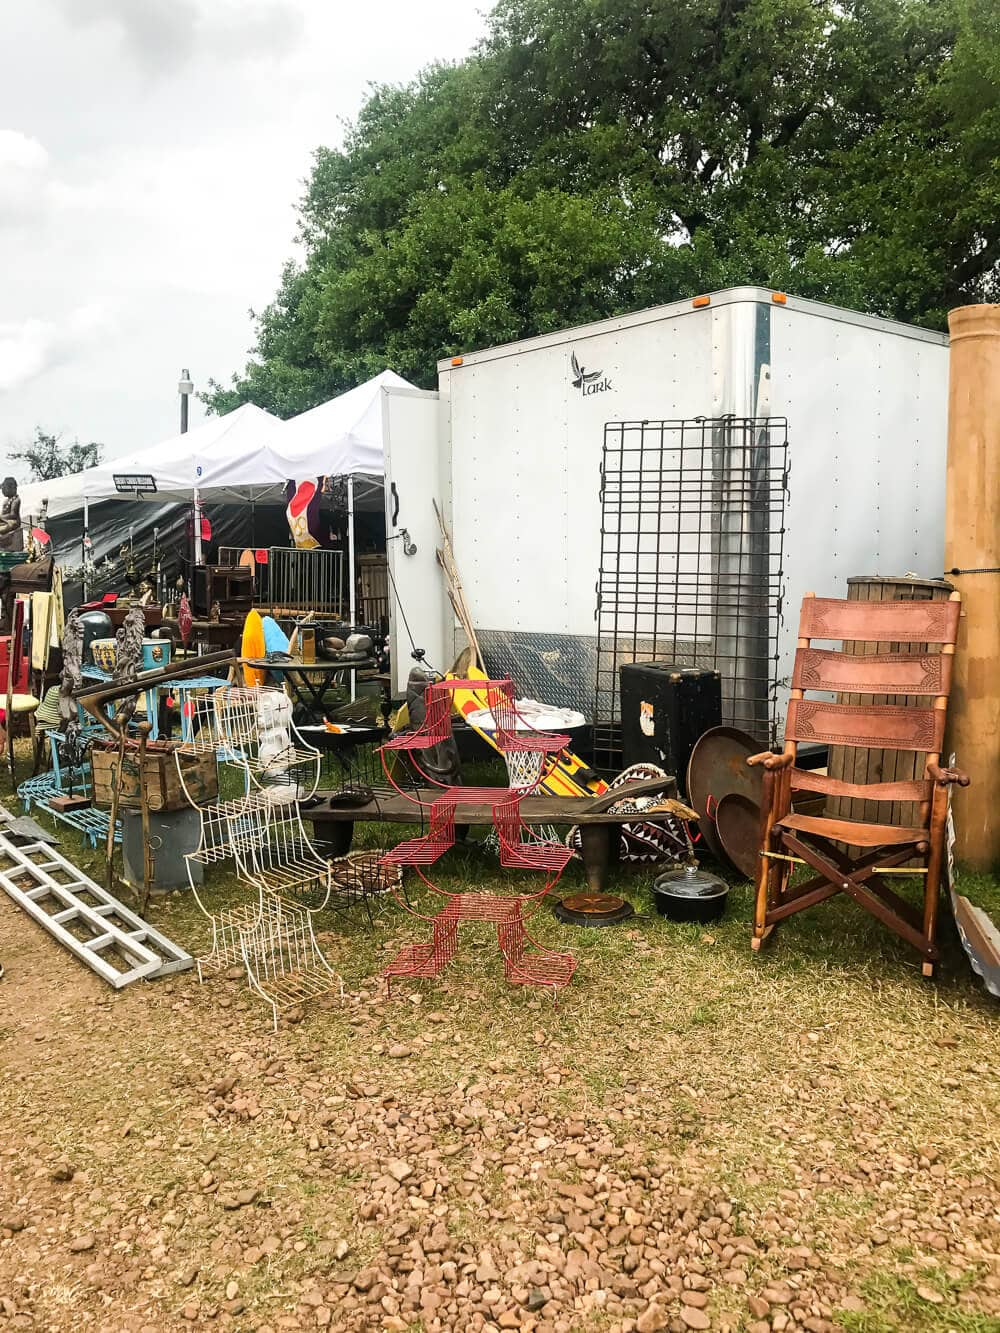 A trip to the spring 2017 Round Top Antique Show - details on all the awesome finds, beautiful antiques, and a new craze we stumbled on!